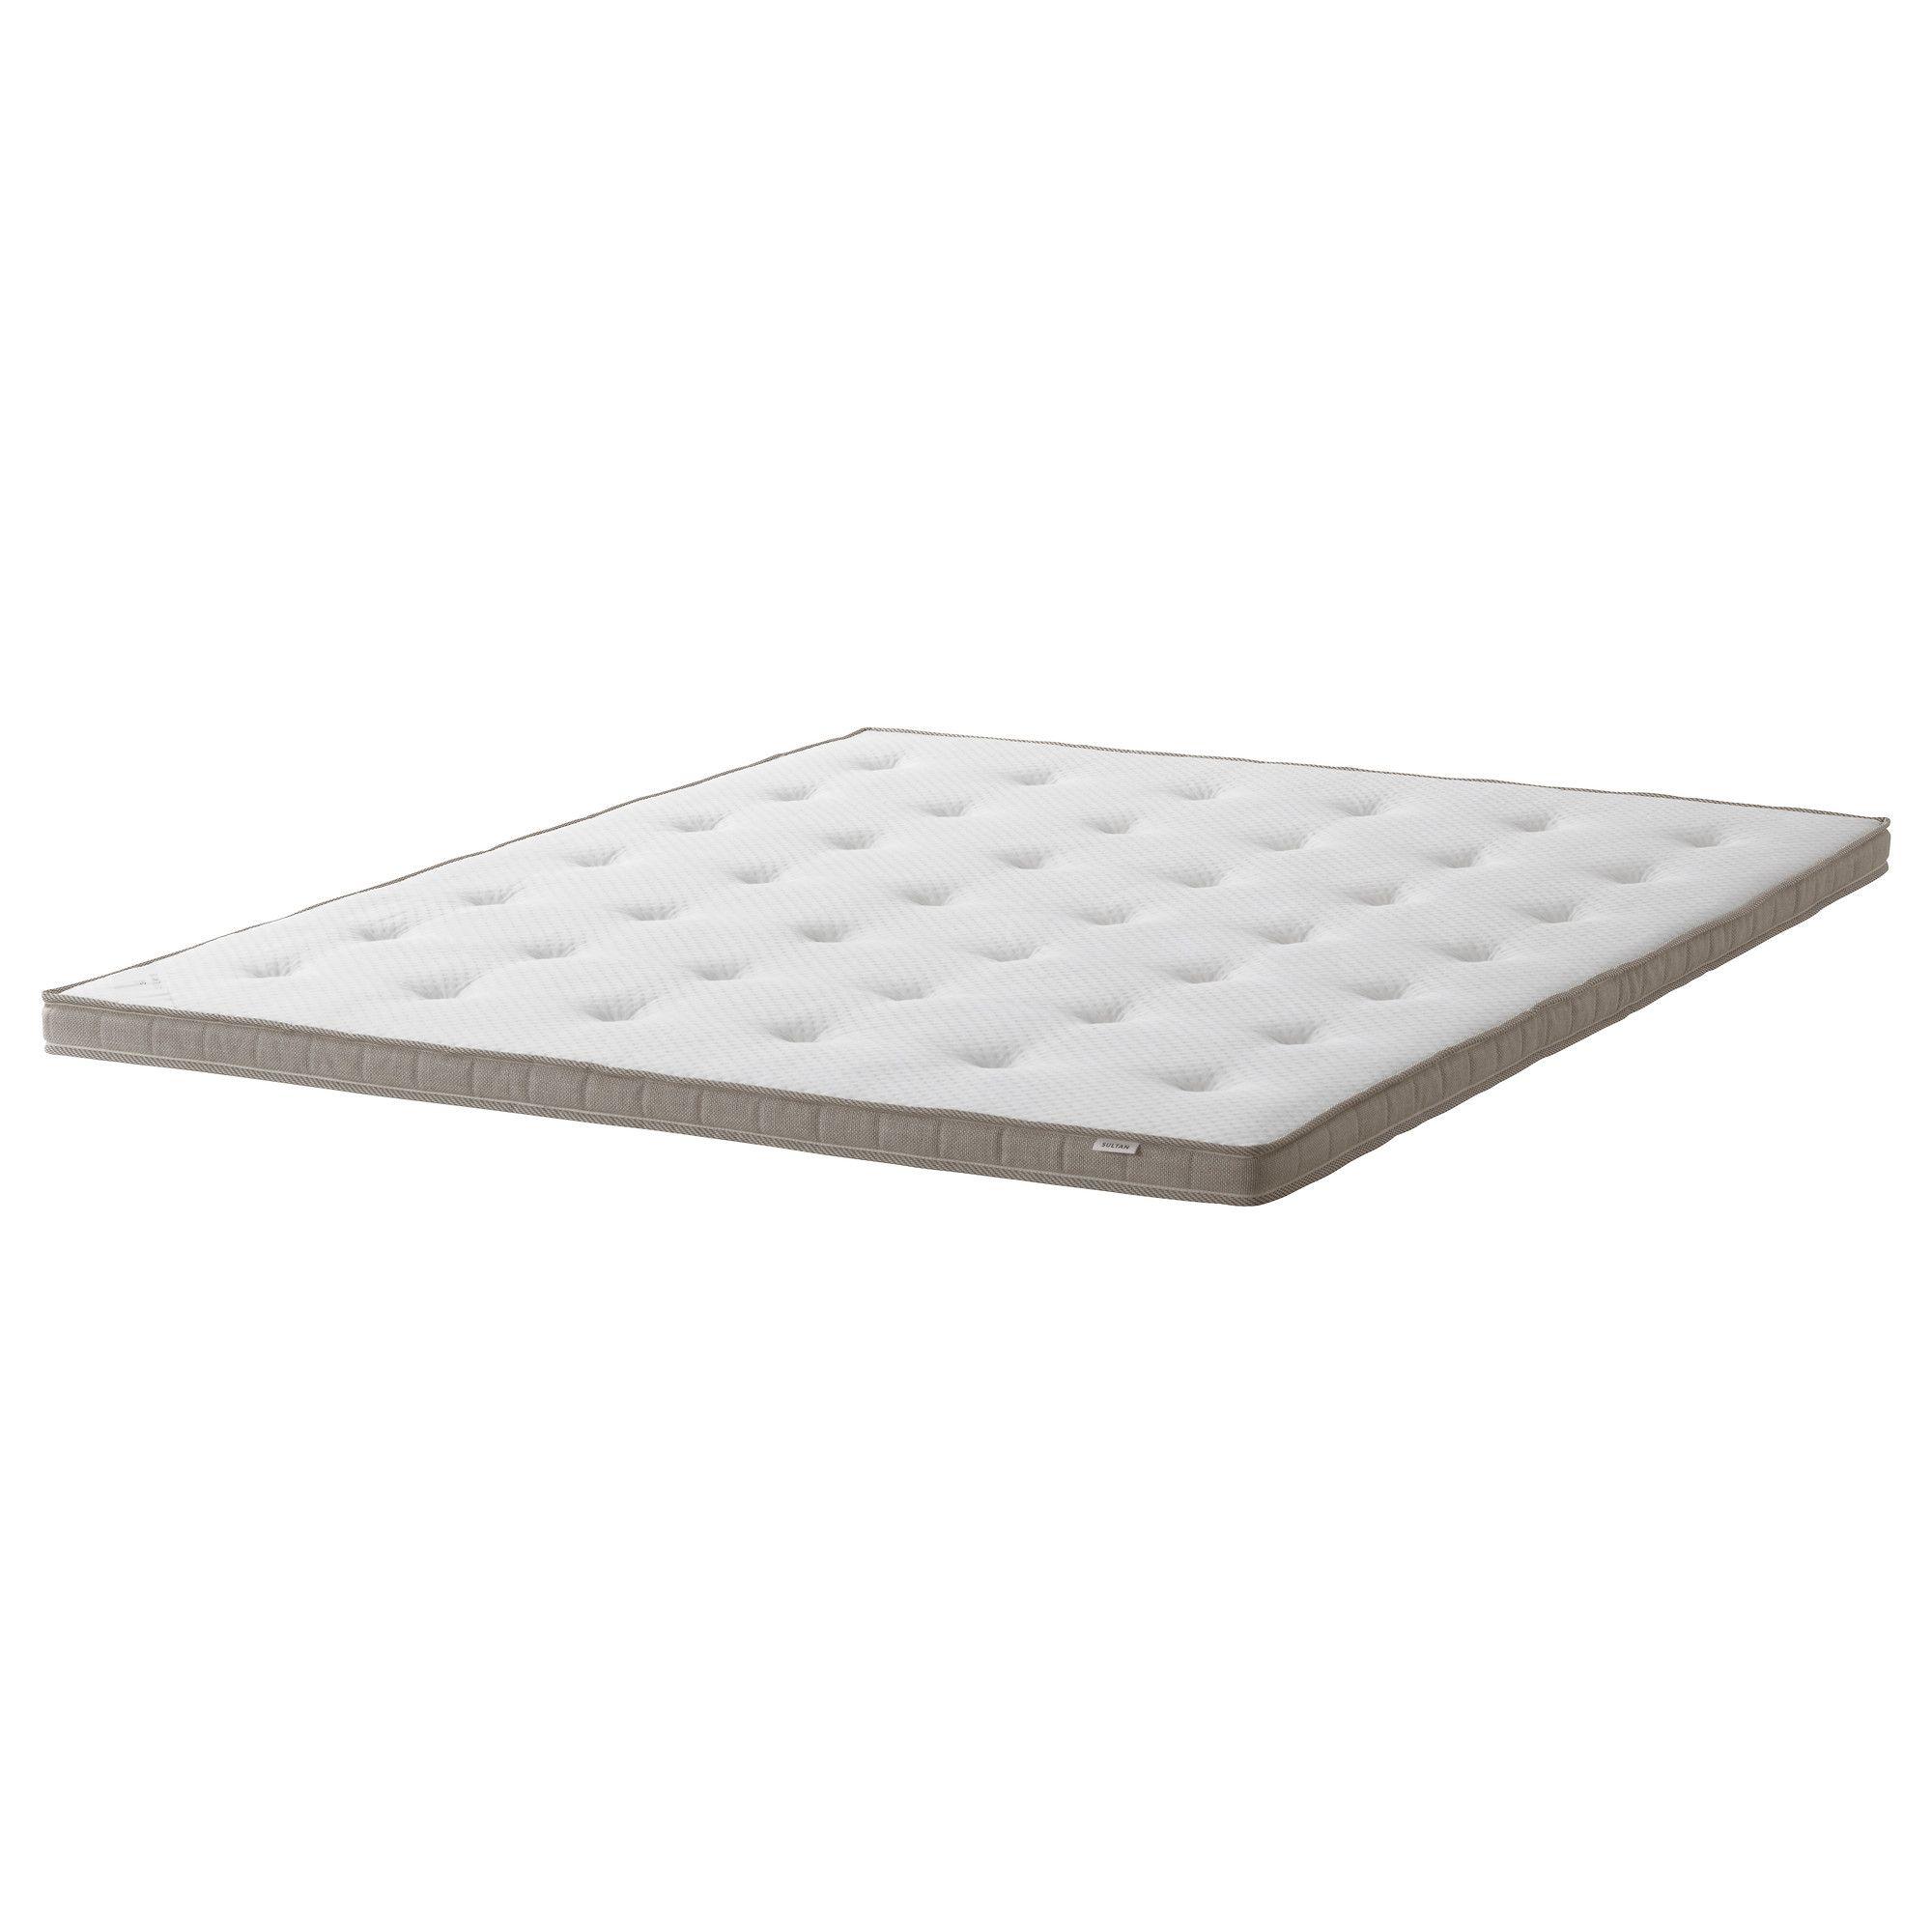 ikea mattresses king base beds legs double used wooden evenskjer hamarvik guest hardly bed p mattress and size